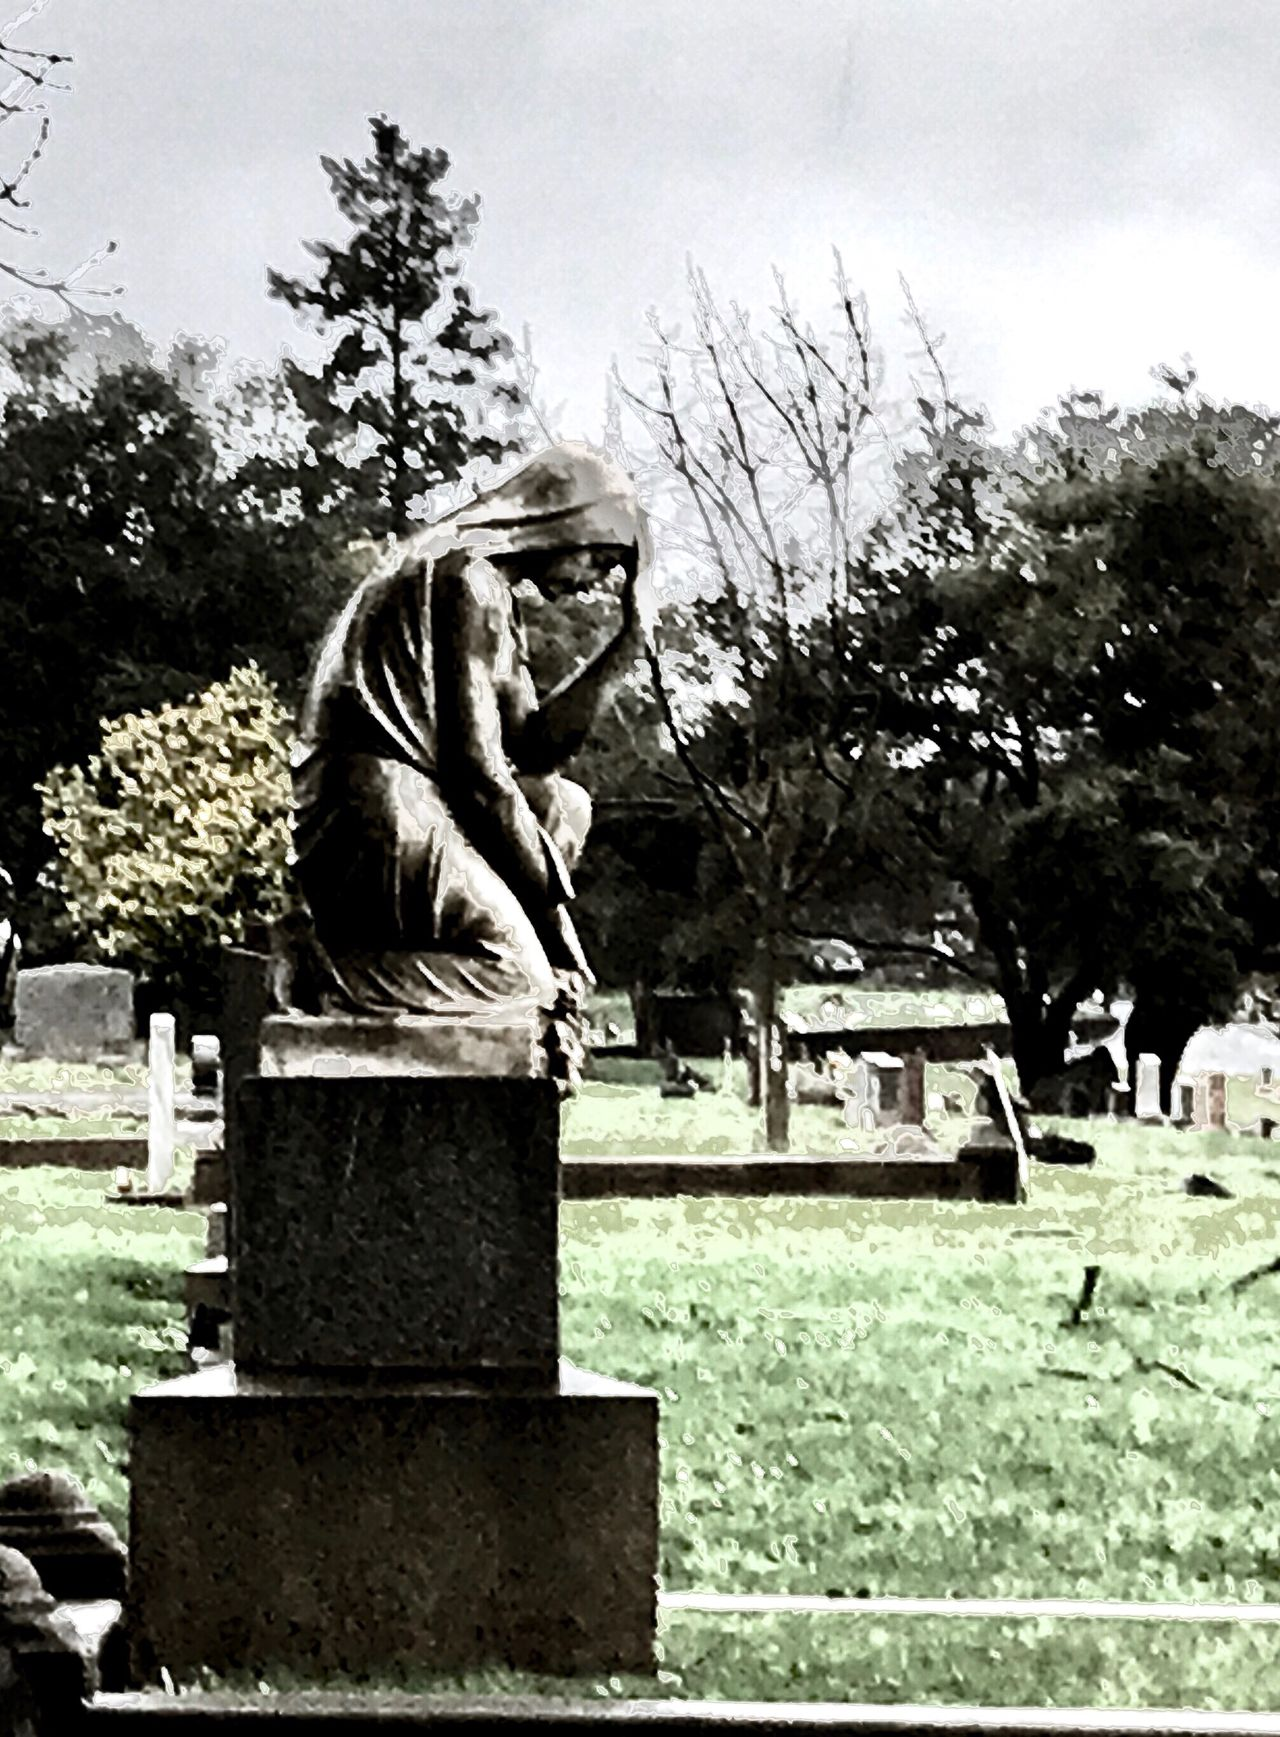 There are angels everywhere, even if you look to the trees. Hidden Angels Angel Wings Angelic Memorial Tombstone Tree Outdoors Grave Sky Day Grass Cemetery Cemetery Photography Cemetery_shots Angel Angel Or Devil? Angels Angel Statue Tranquility Tranquil Scene Death Death Life And Death Rain Rainy Days